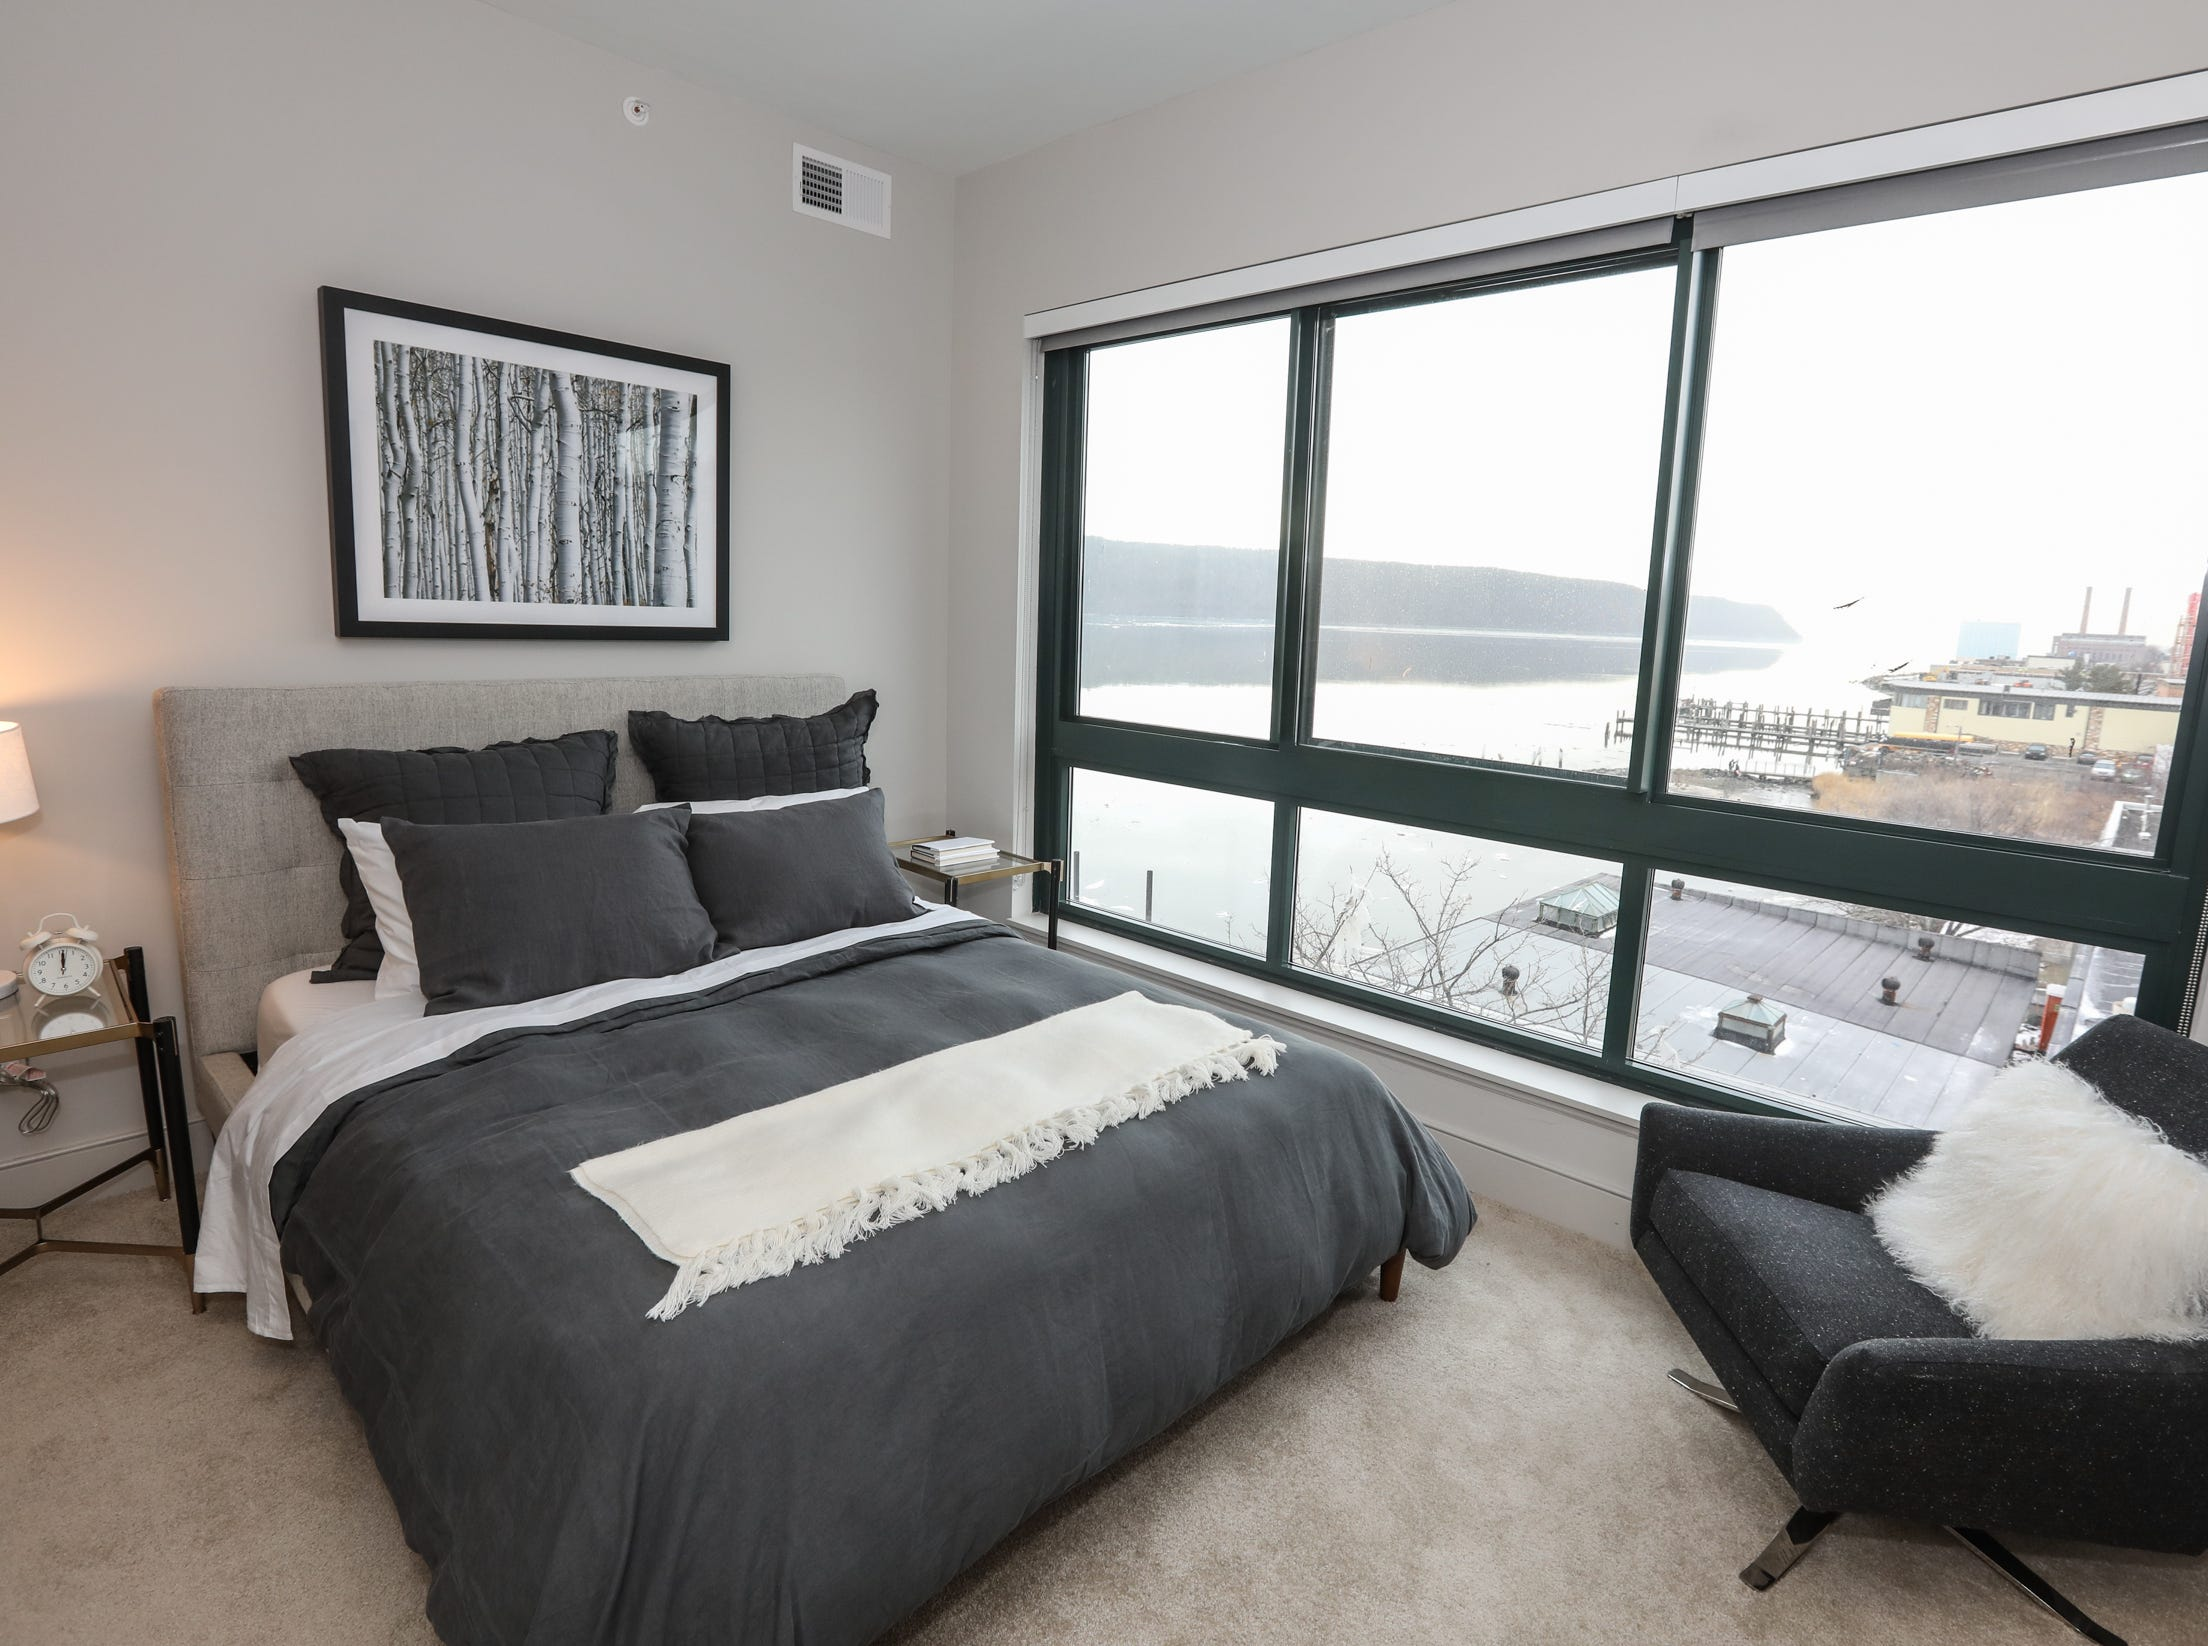 The master bedroom in a 2 bedroom apartment at The River Club at Hudson Park in Yonkers on Friday, February 15, 2019.